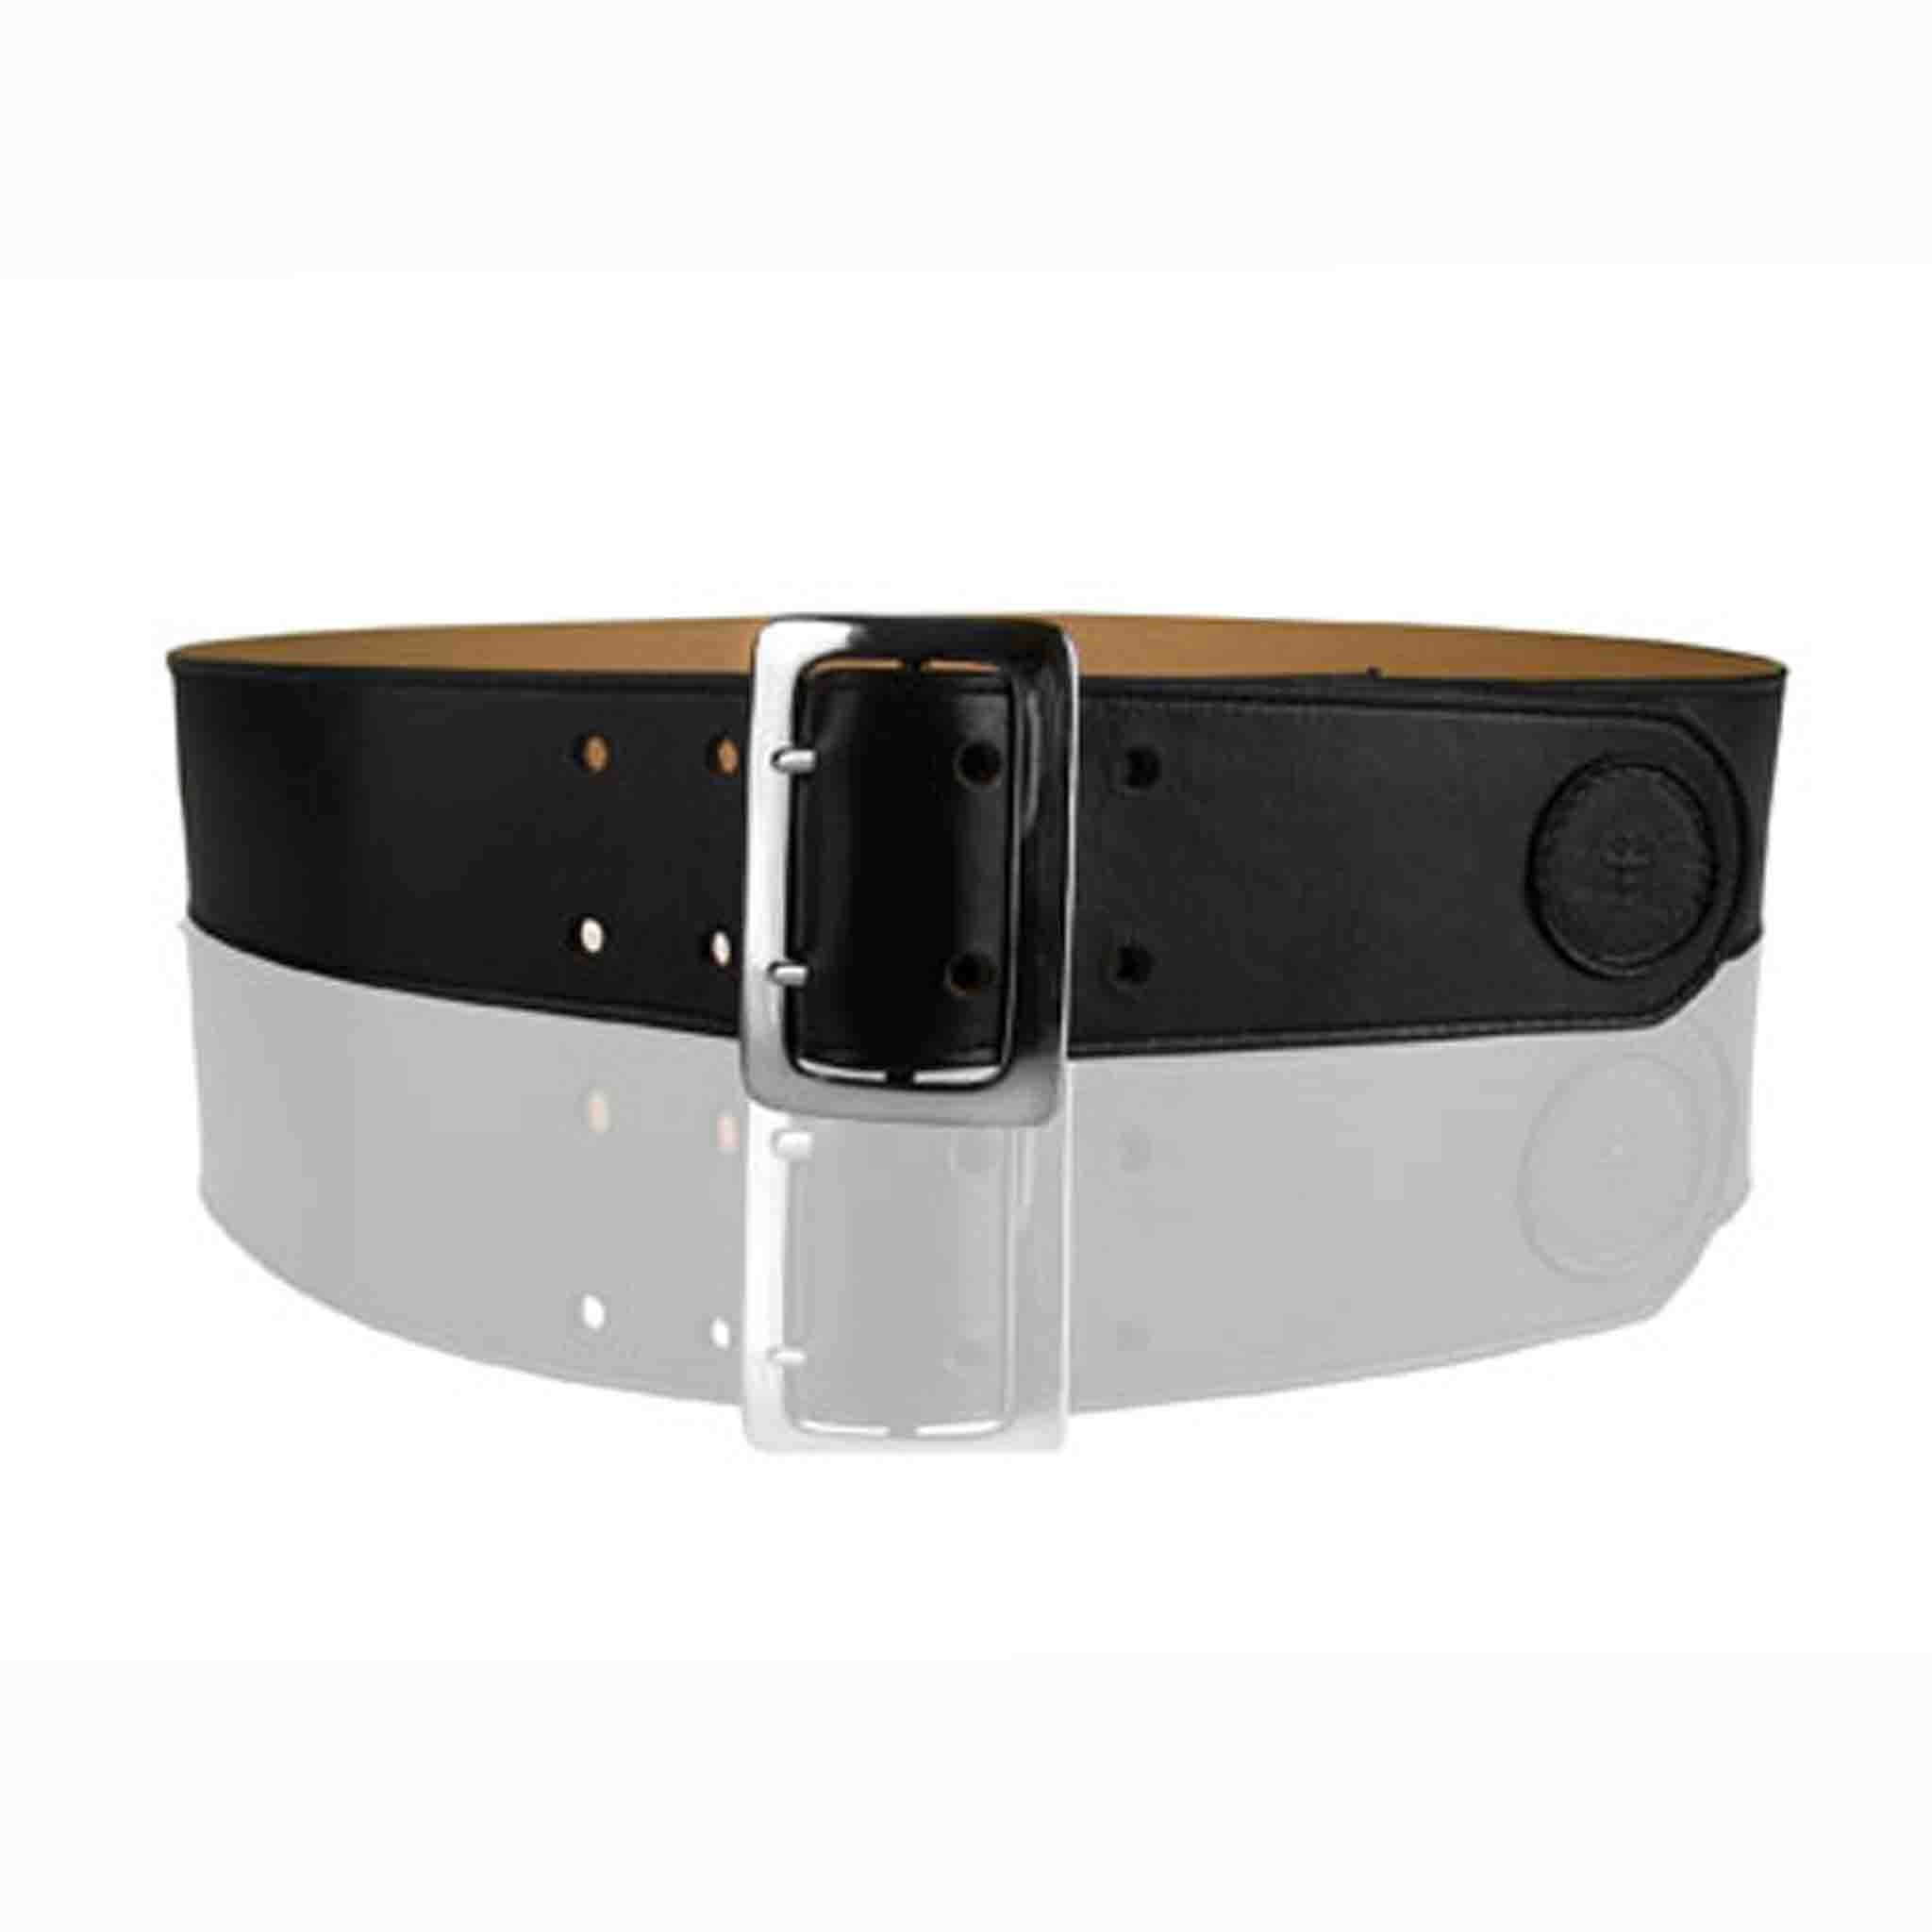 BLACK LEATHER BELT MEN'S BULLE